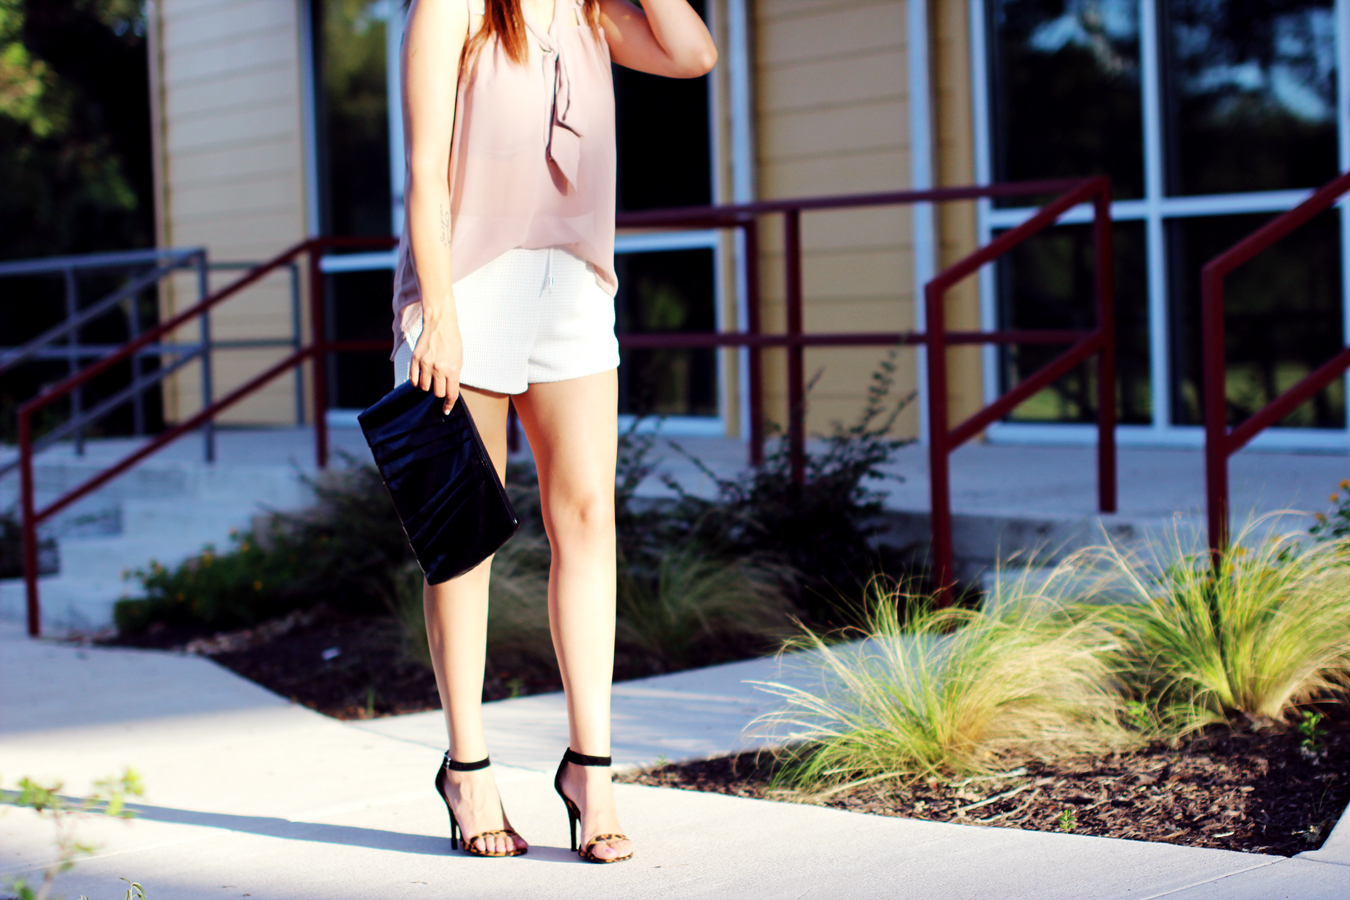 WHITE-SHORTS-ATHLETIC-NEUTRALS-GLAM-STYLIST-CLASSIC-SUMMER-STYLE-FIXIN-TO-THRILL-AUSTIN-FASHION-BLOG-TEXAS-3